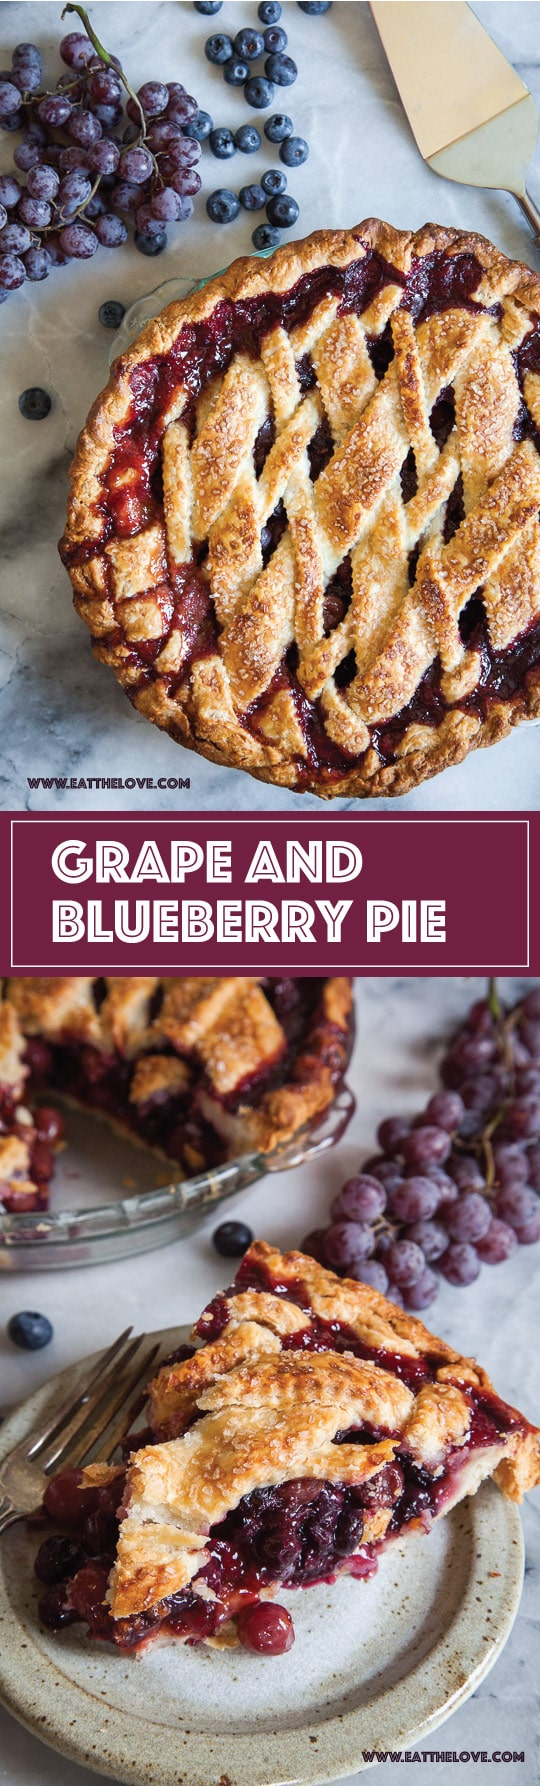 Grape and Blueberry Pie by Irvin